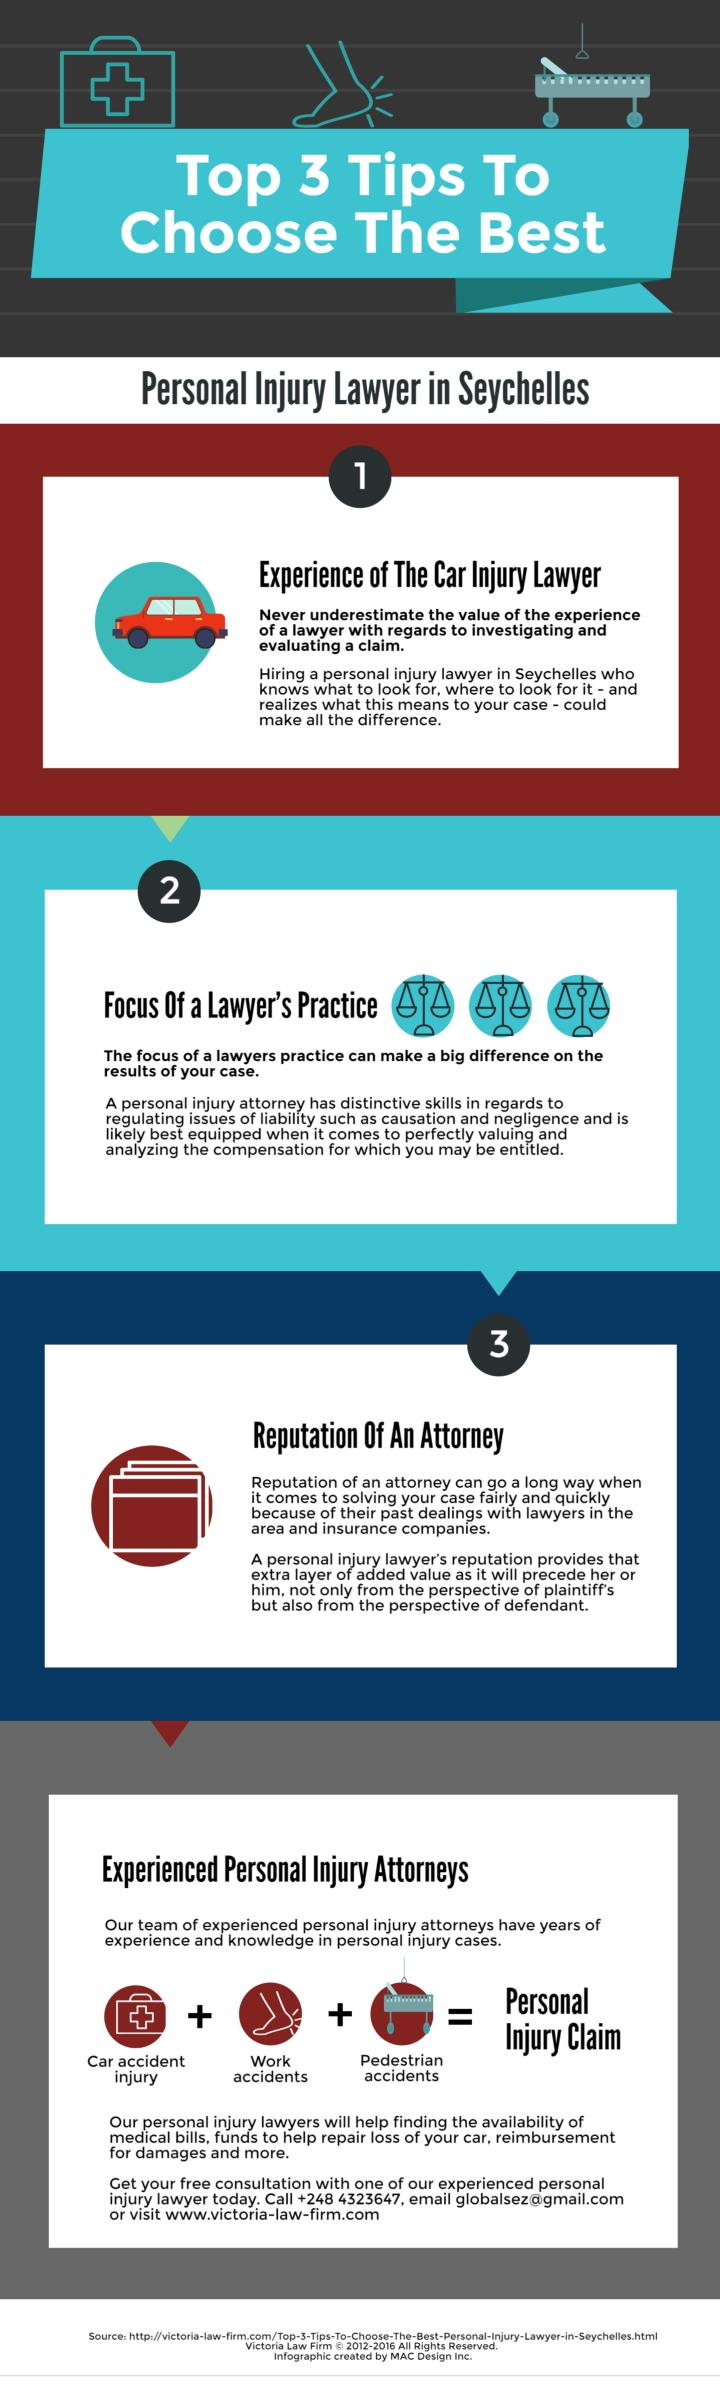 Top 3 tips to choose the best personal injury lawyer in seychelles